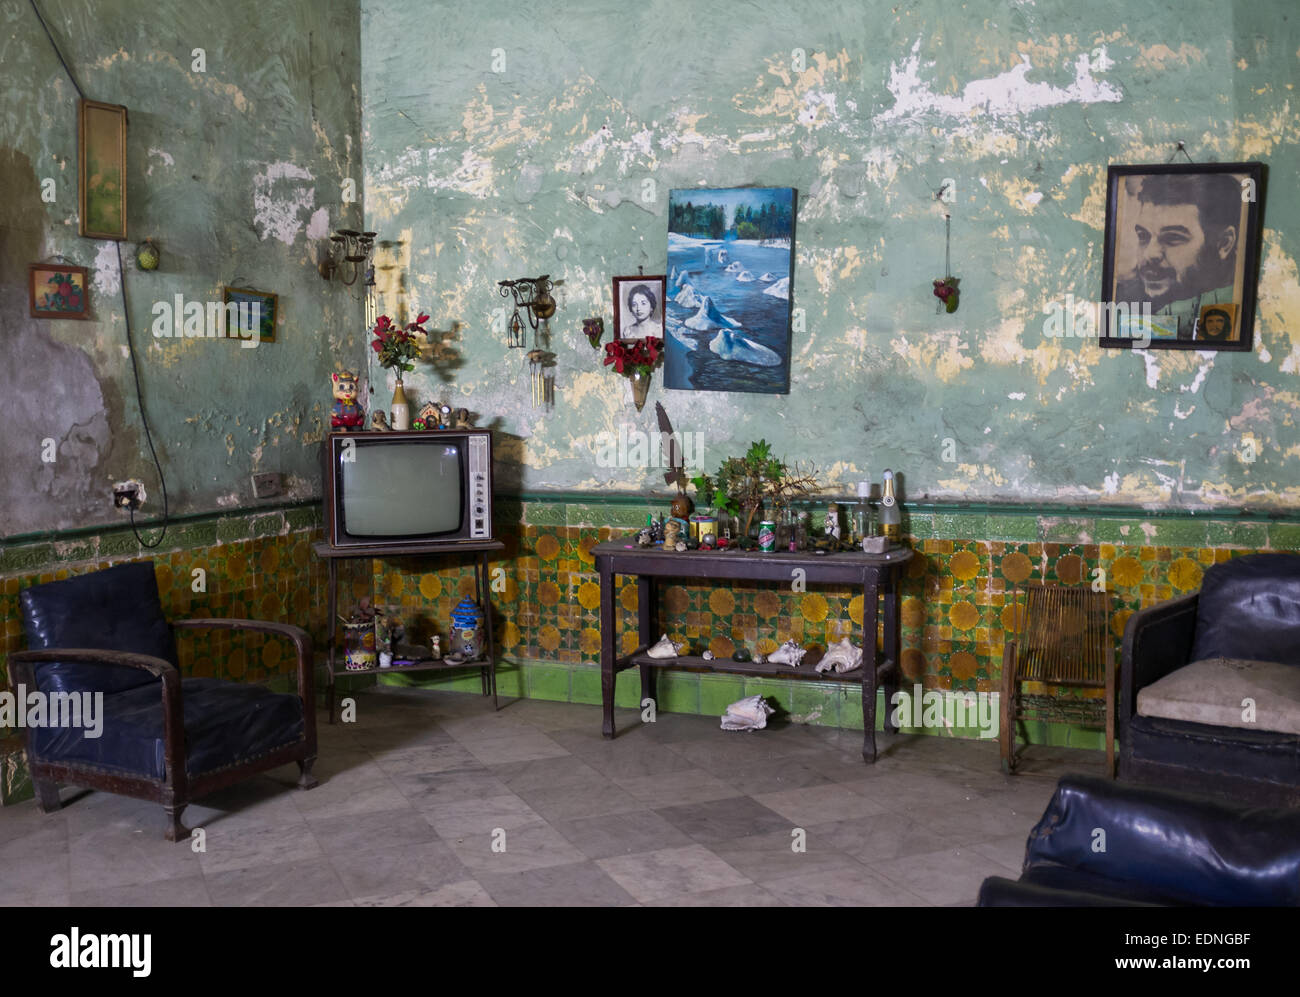 Cuba Street Archive. Living room scene in Cuban home. - Stock Image